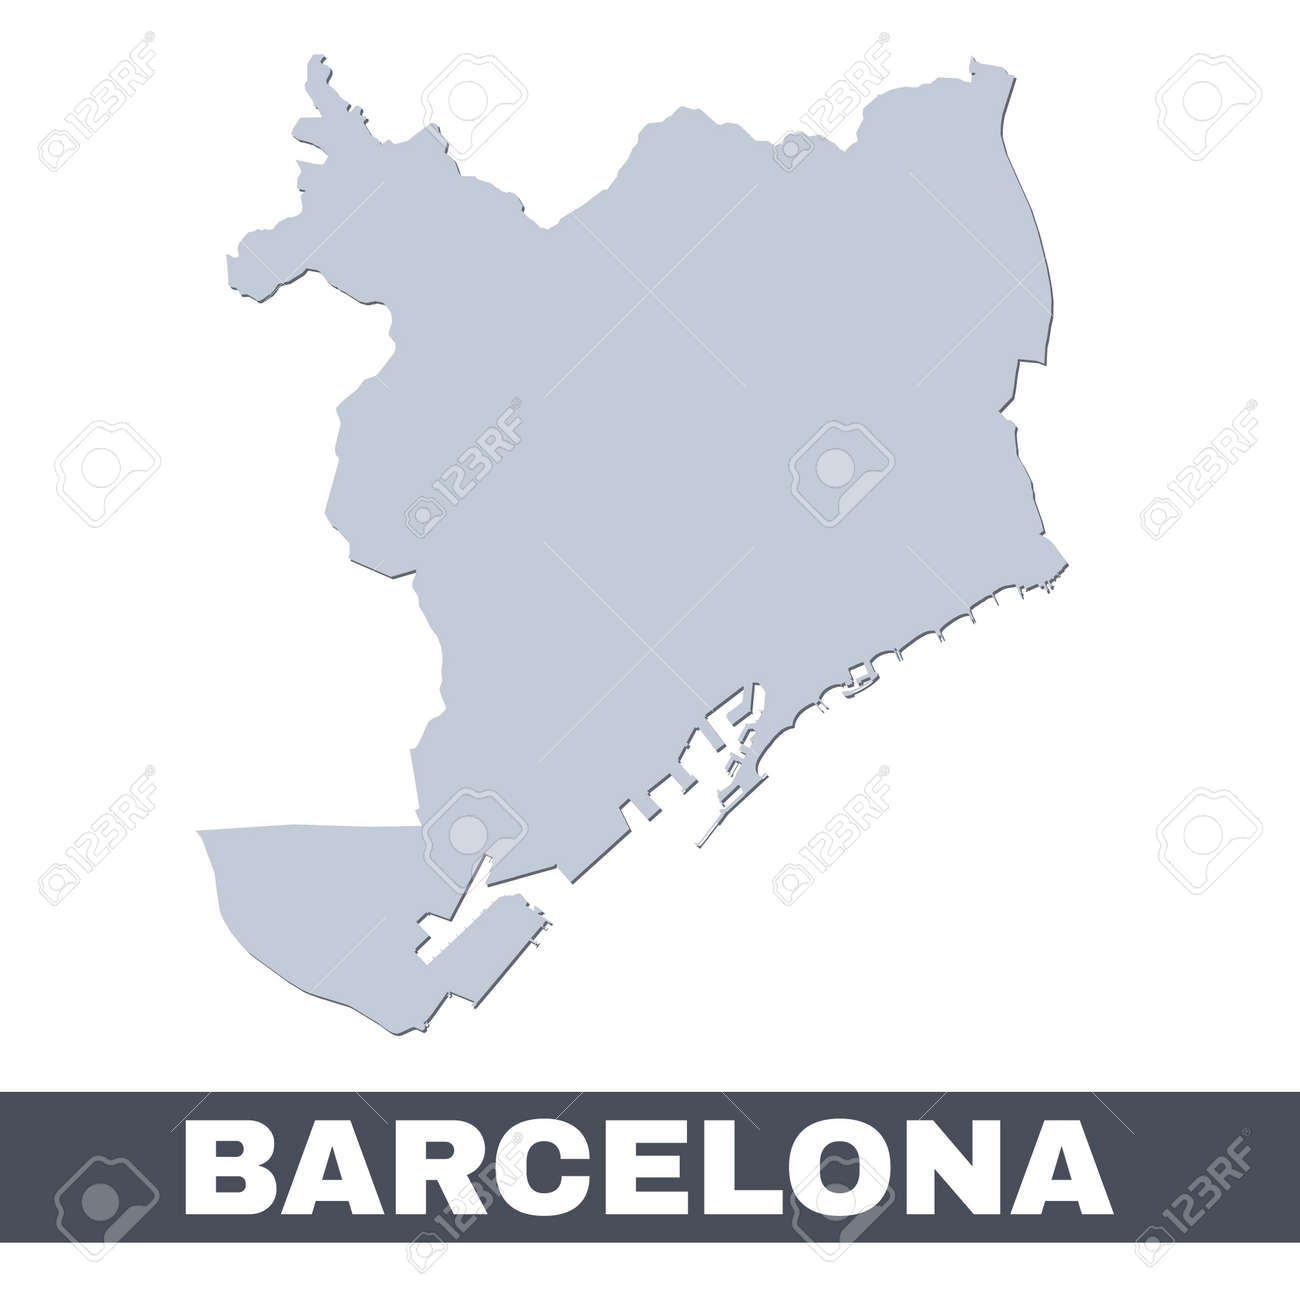 Barcelona outline map. Vector map of Barcelona city area within its borders. Grey with shadow on white background. Isolated illustration. - 161392680